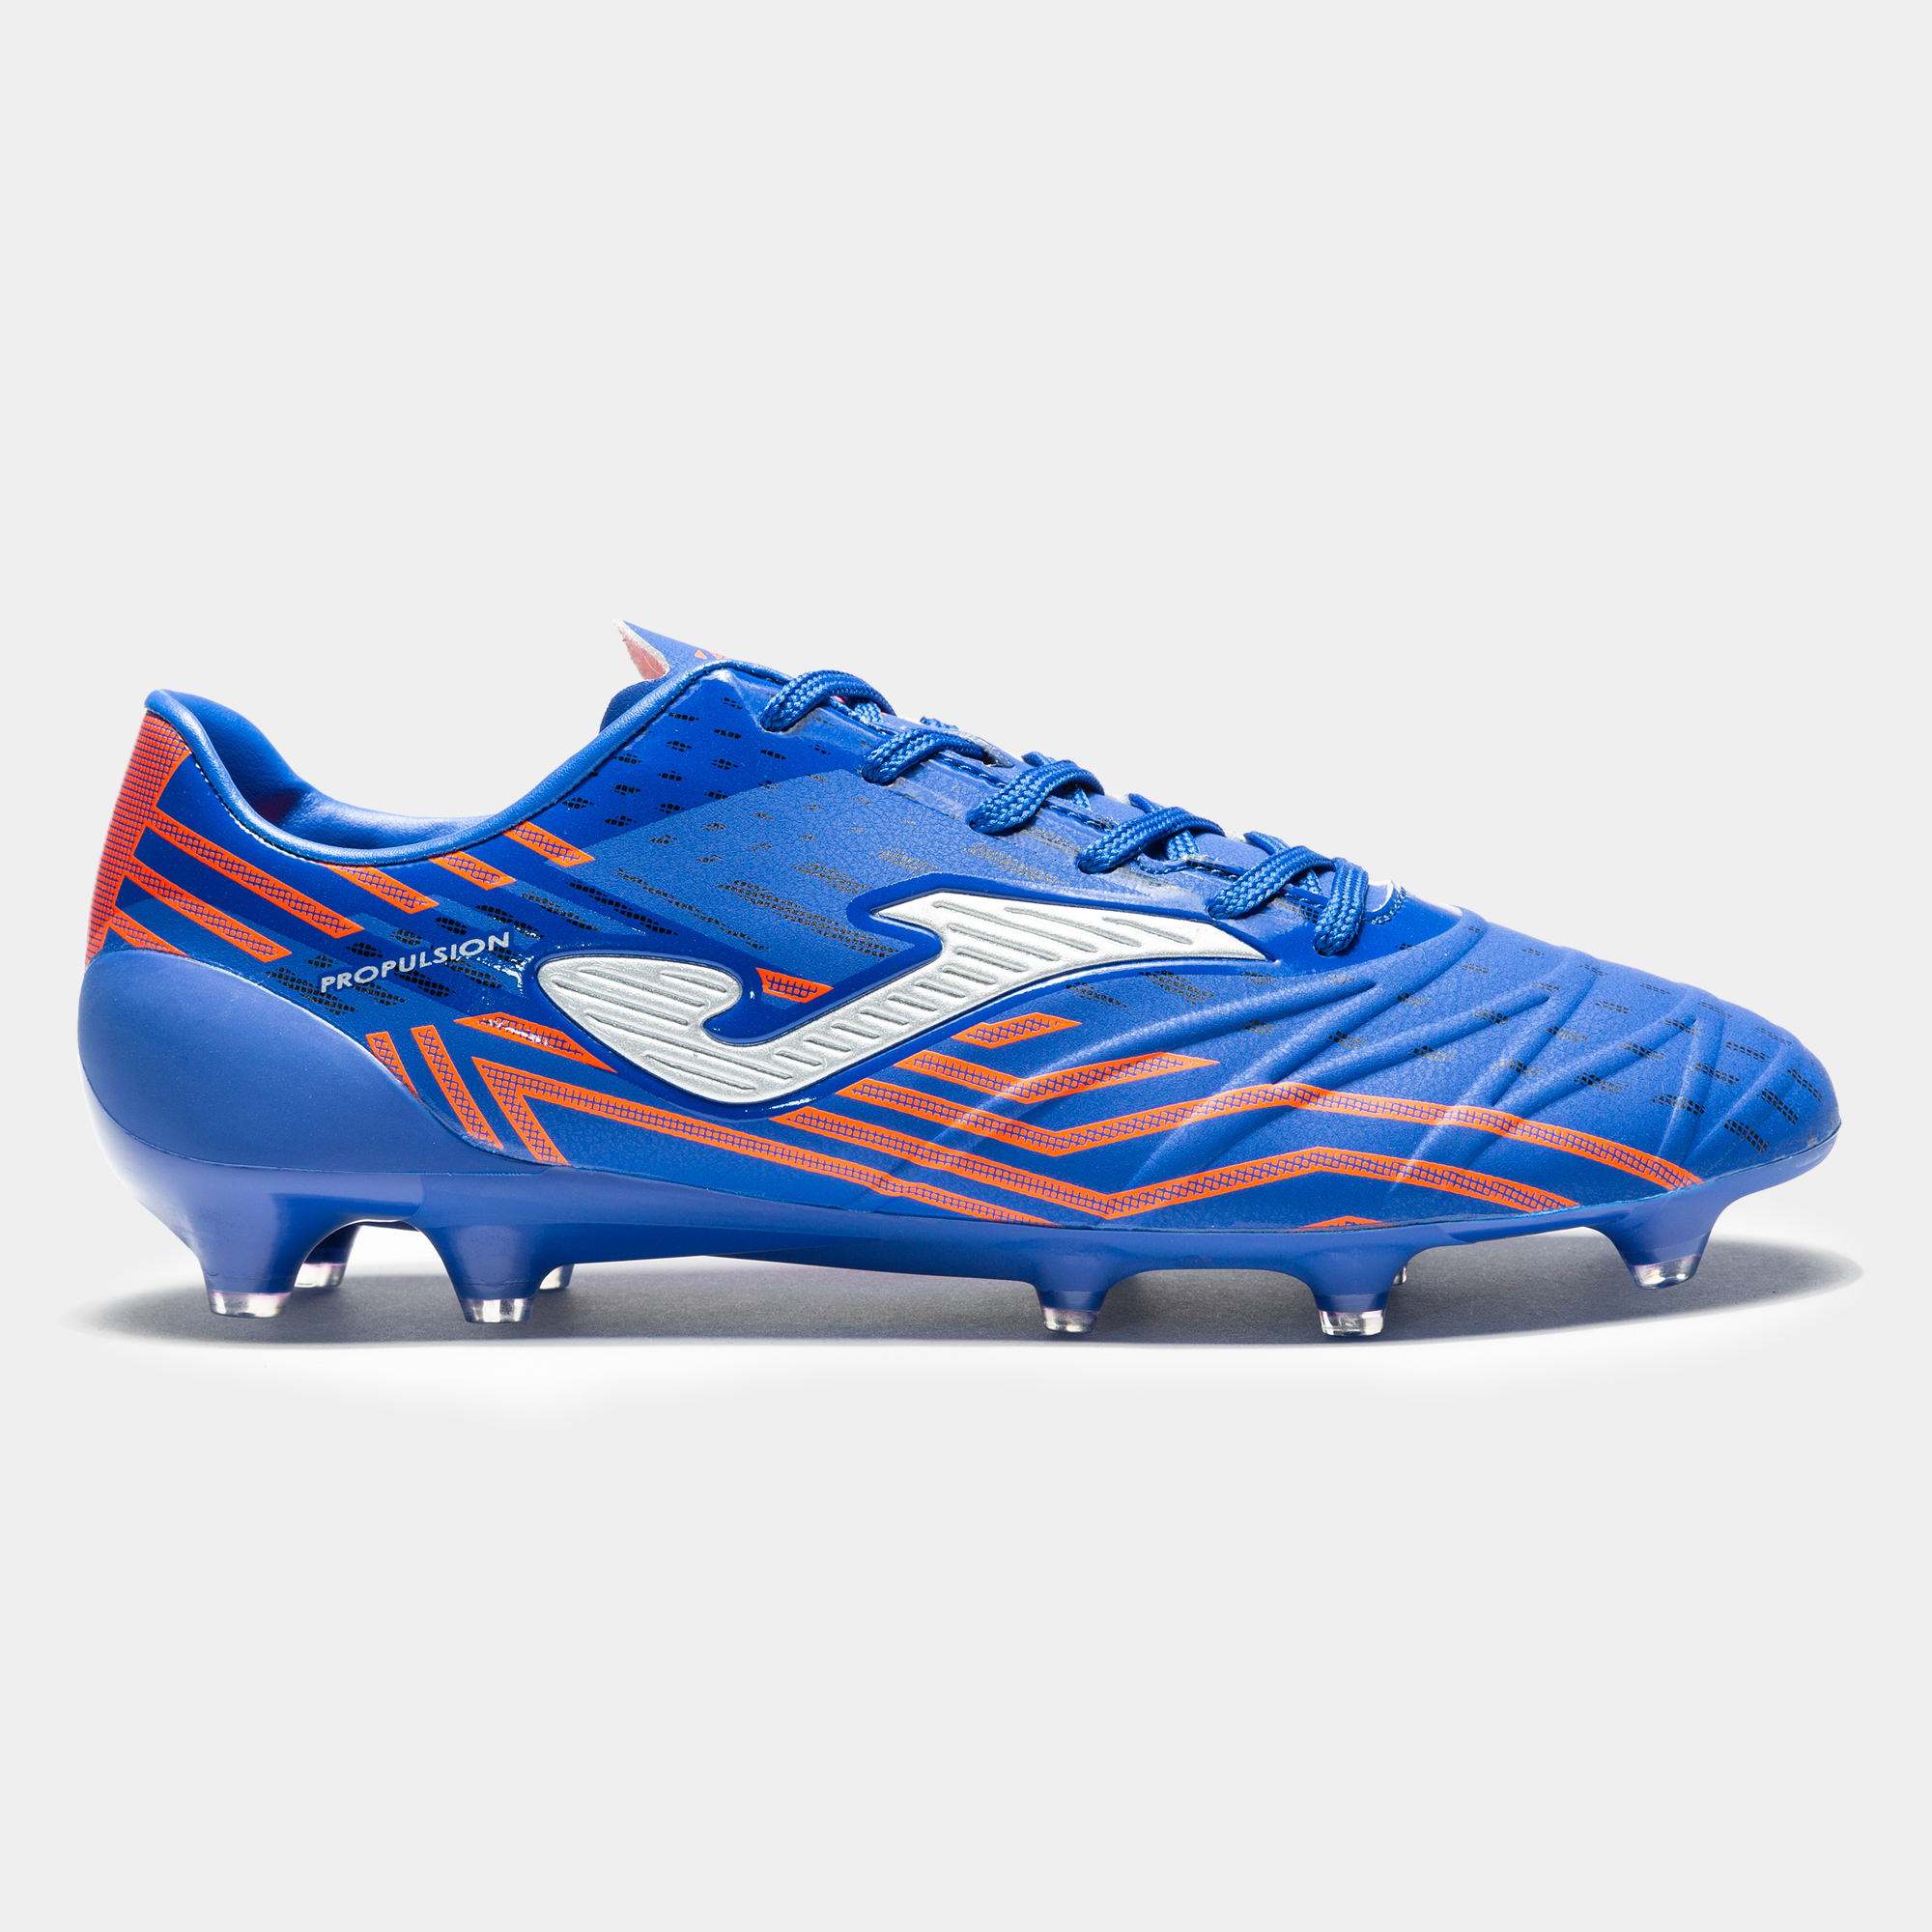 Joma Propulsion Cup 904